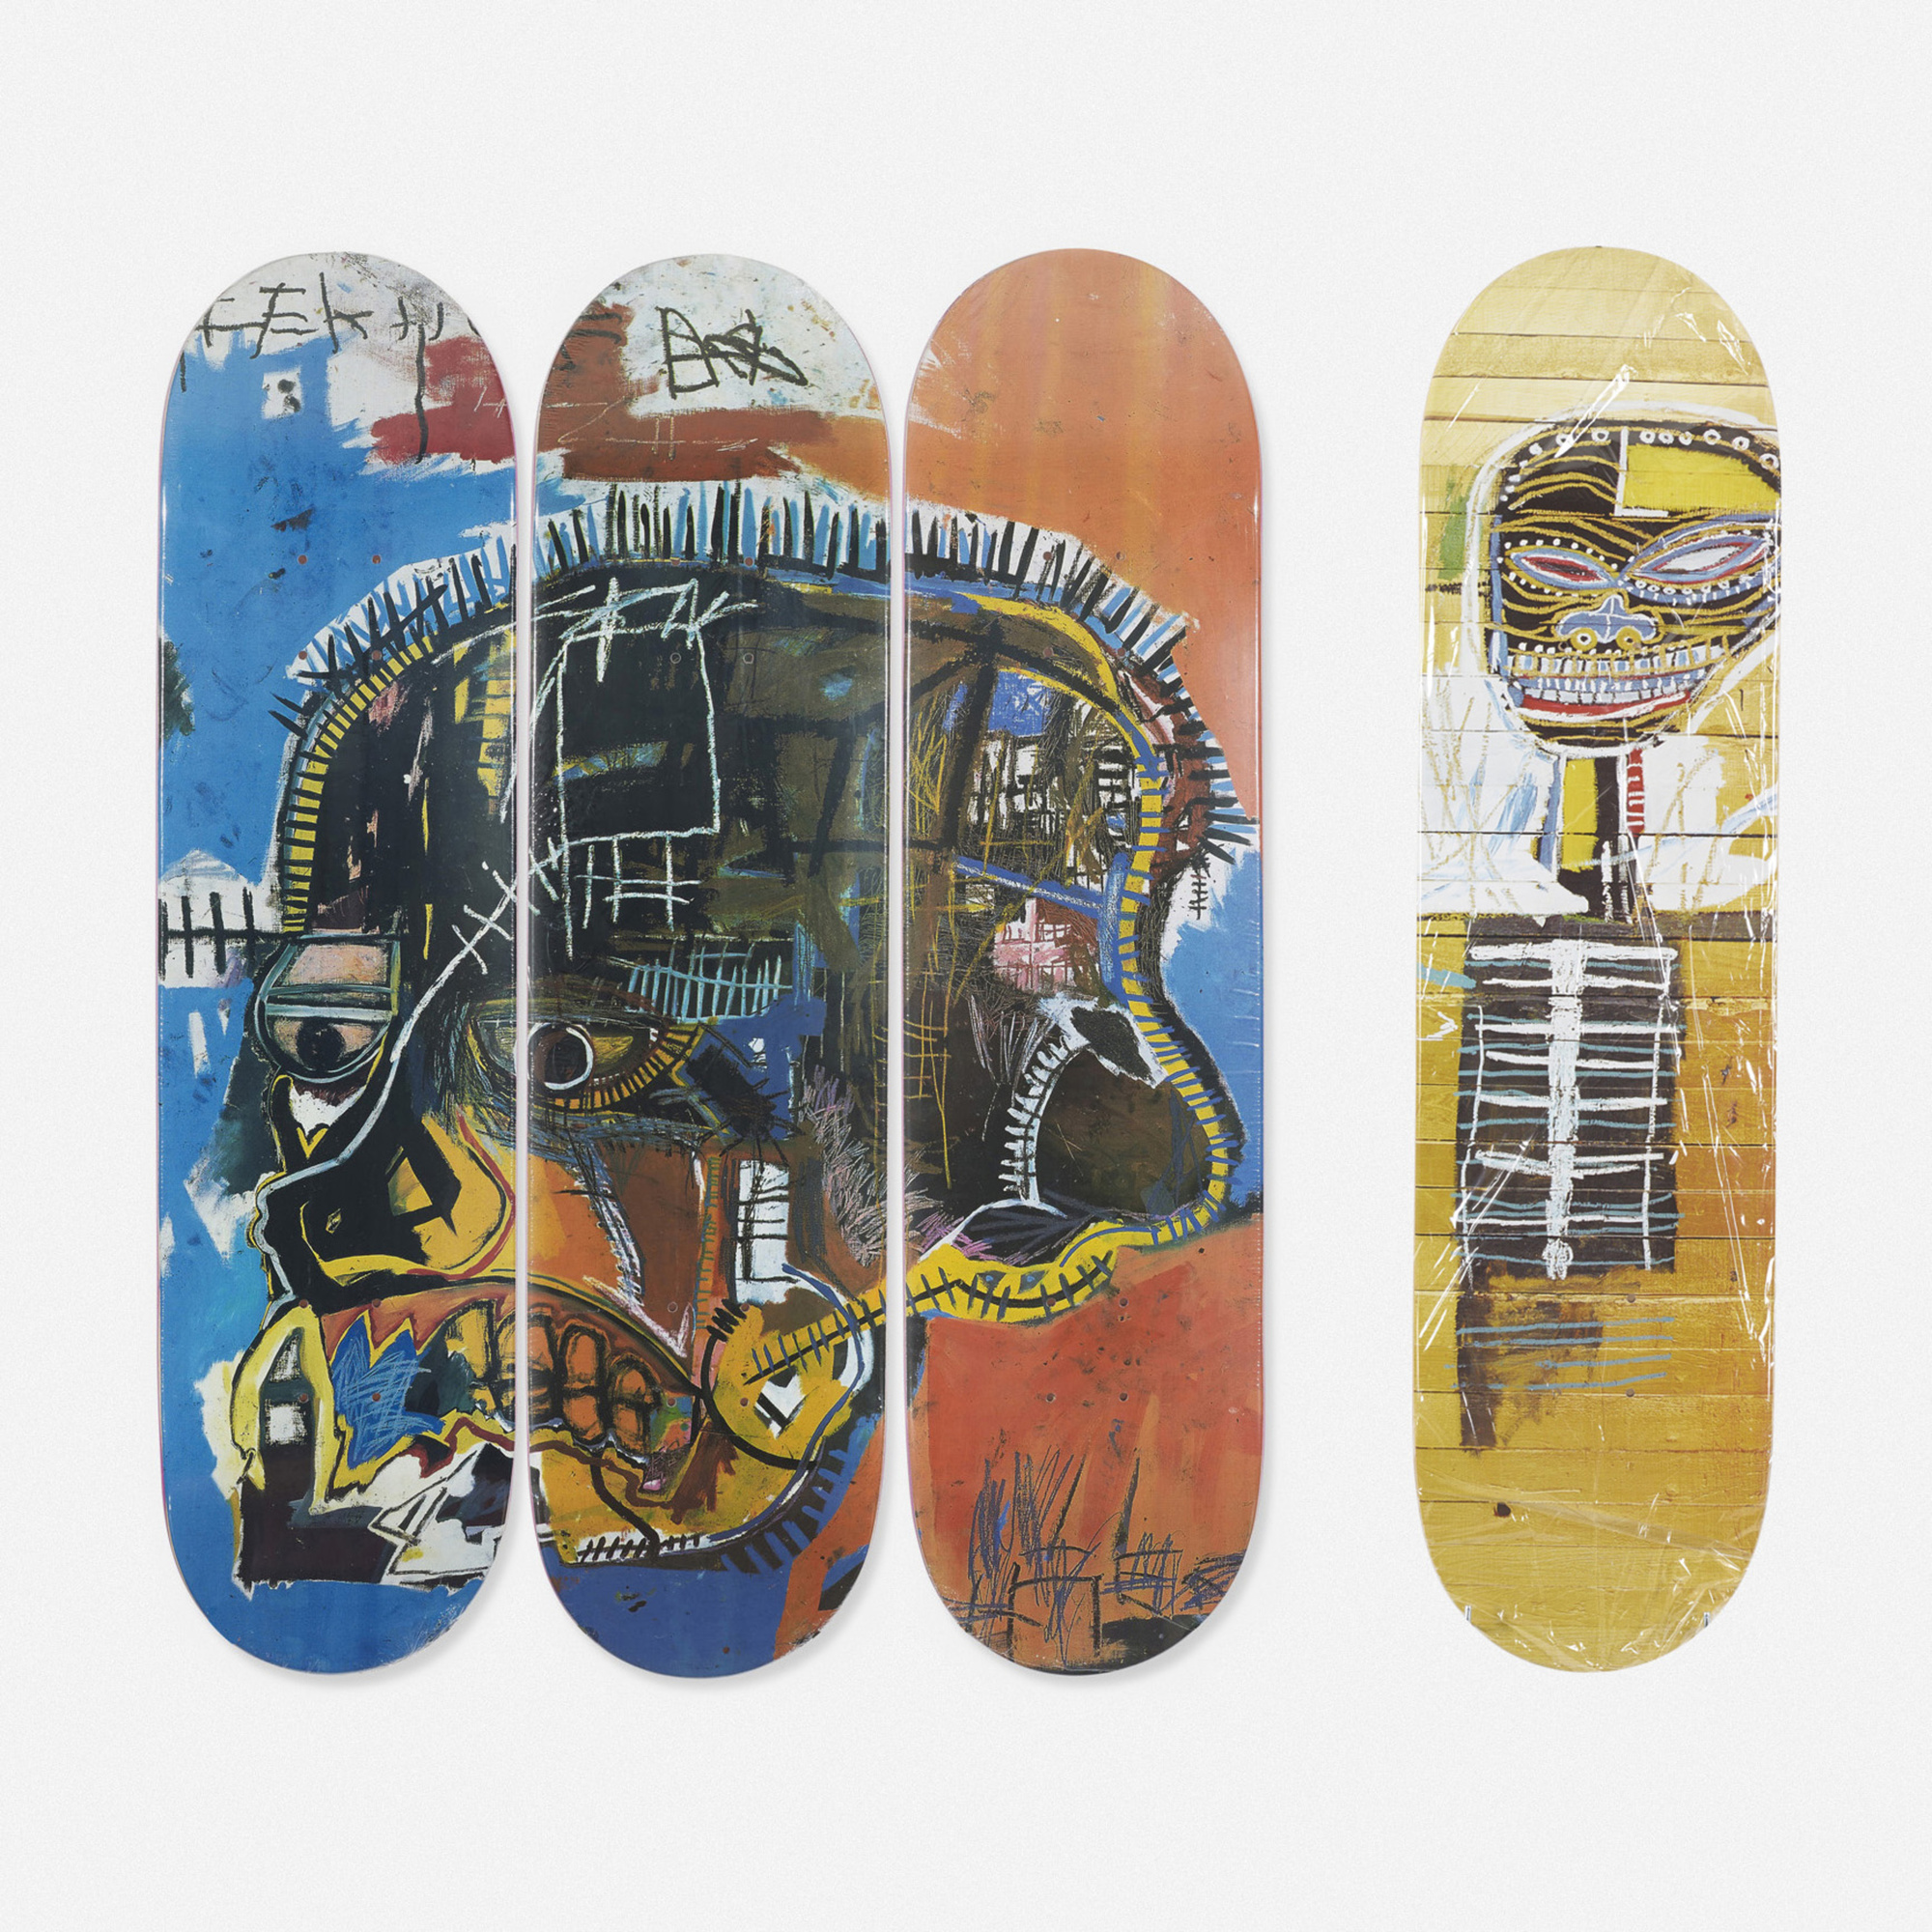 148: Jean-Michel Basquiat / skateboard decks, set of four (2 of 2)